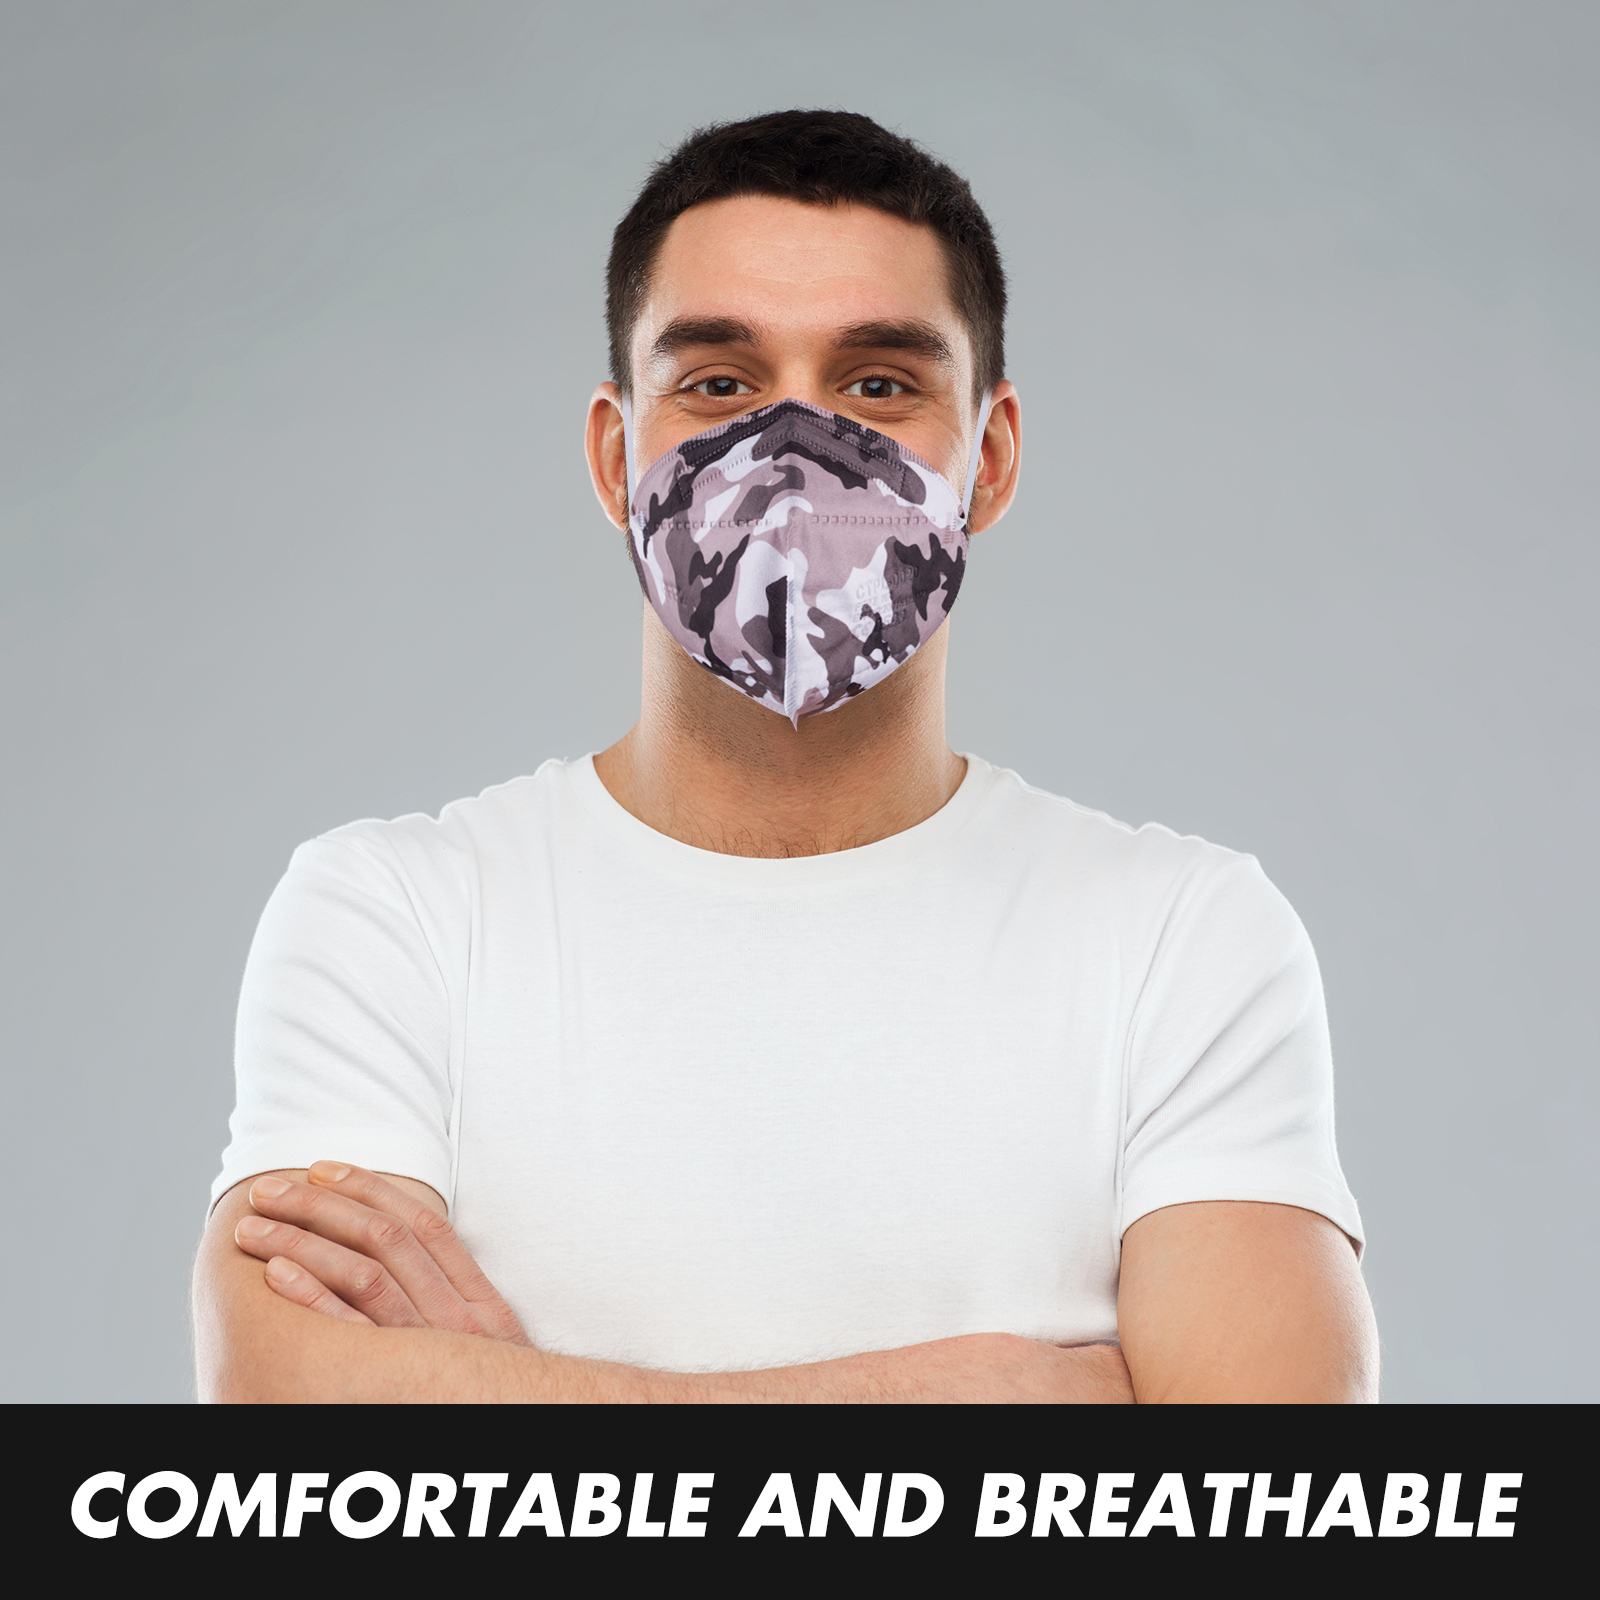 Camouflage FFP2 Respirator Face Mask with CE0598 Certification